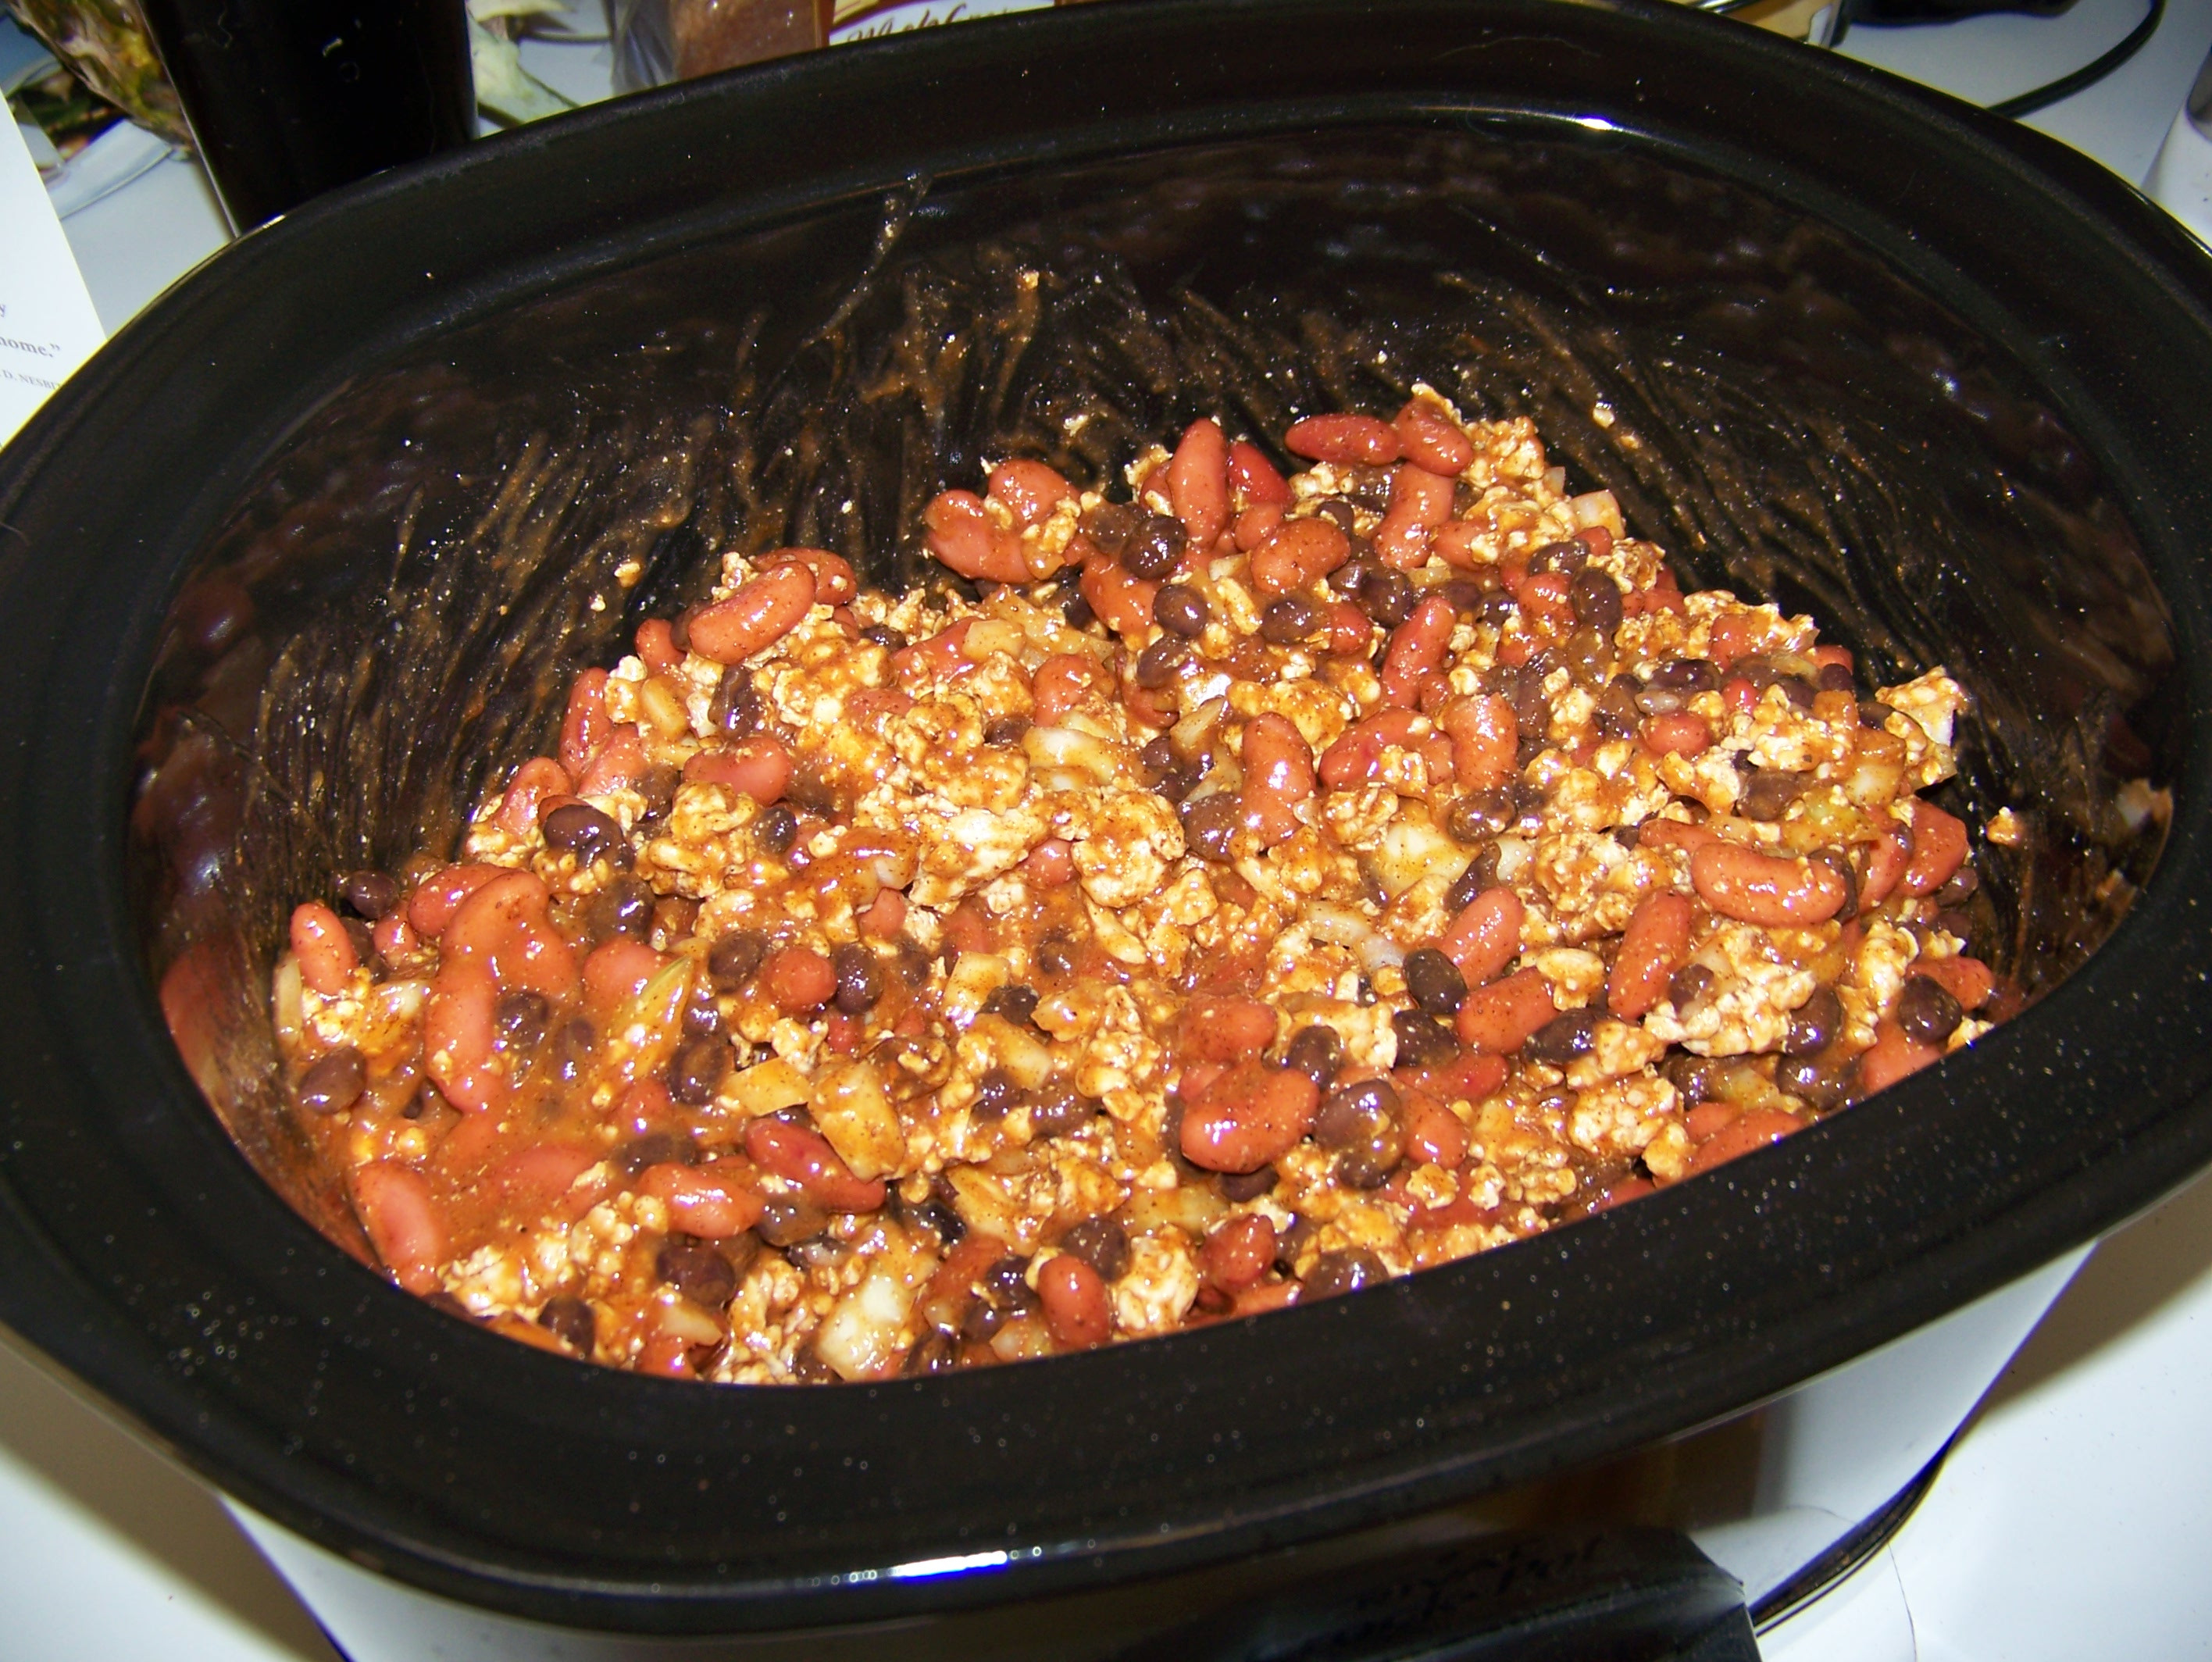 Crock Pot Ground Beef Recipes Healthy  Crock Pot Recipes Chicken Beef with Ground Beef Easy